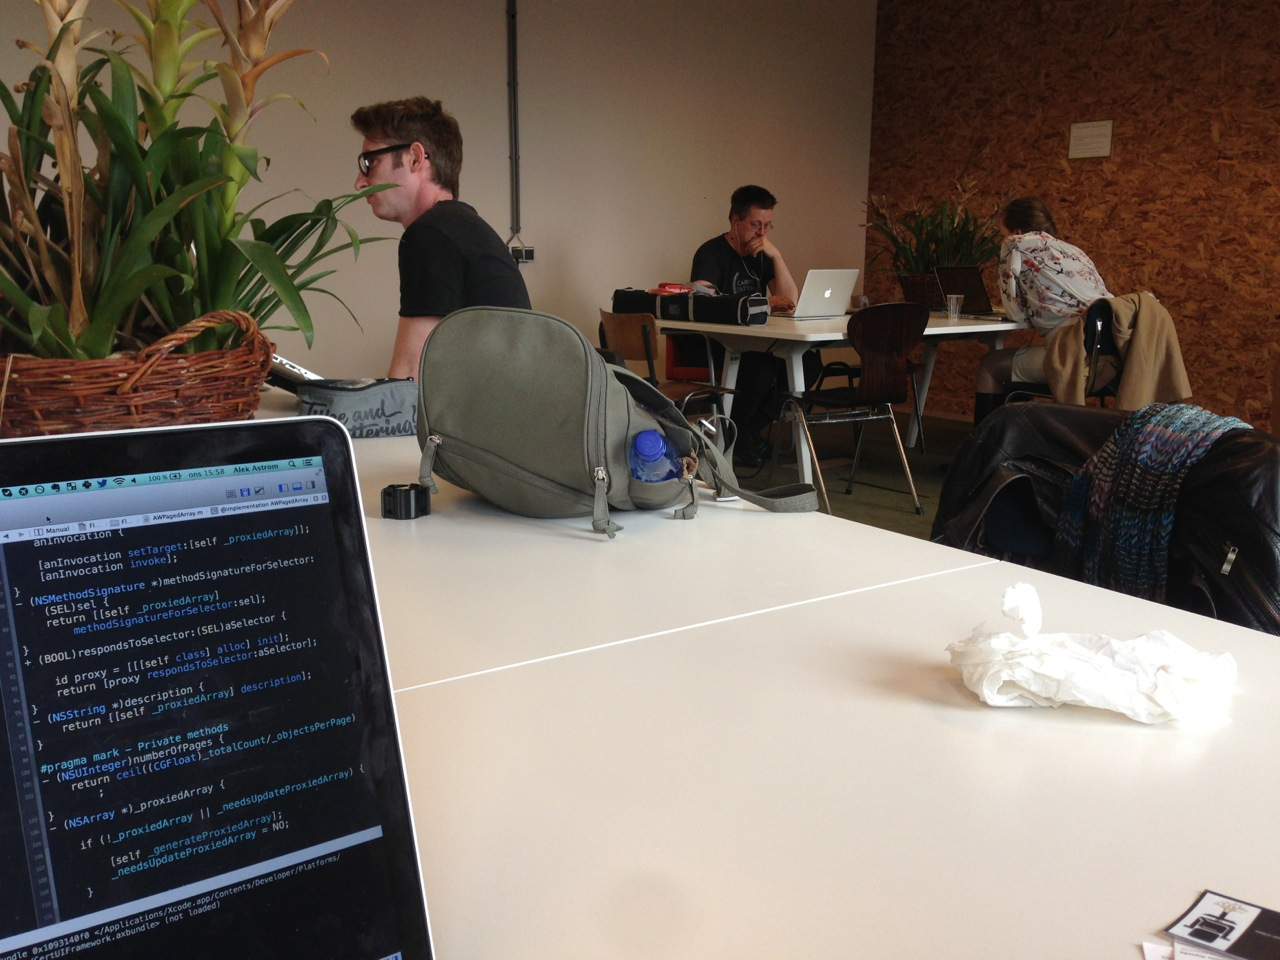 Peeps working at Appsterdam HQ